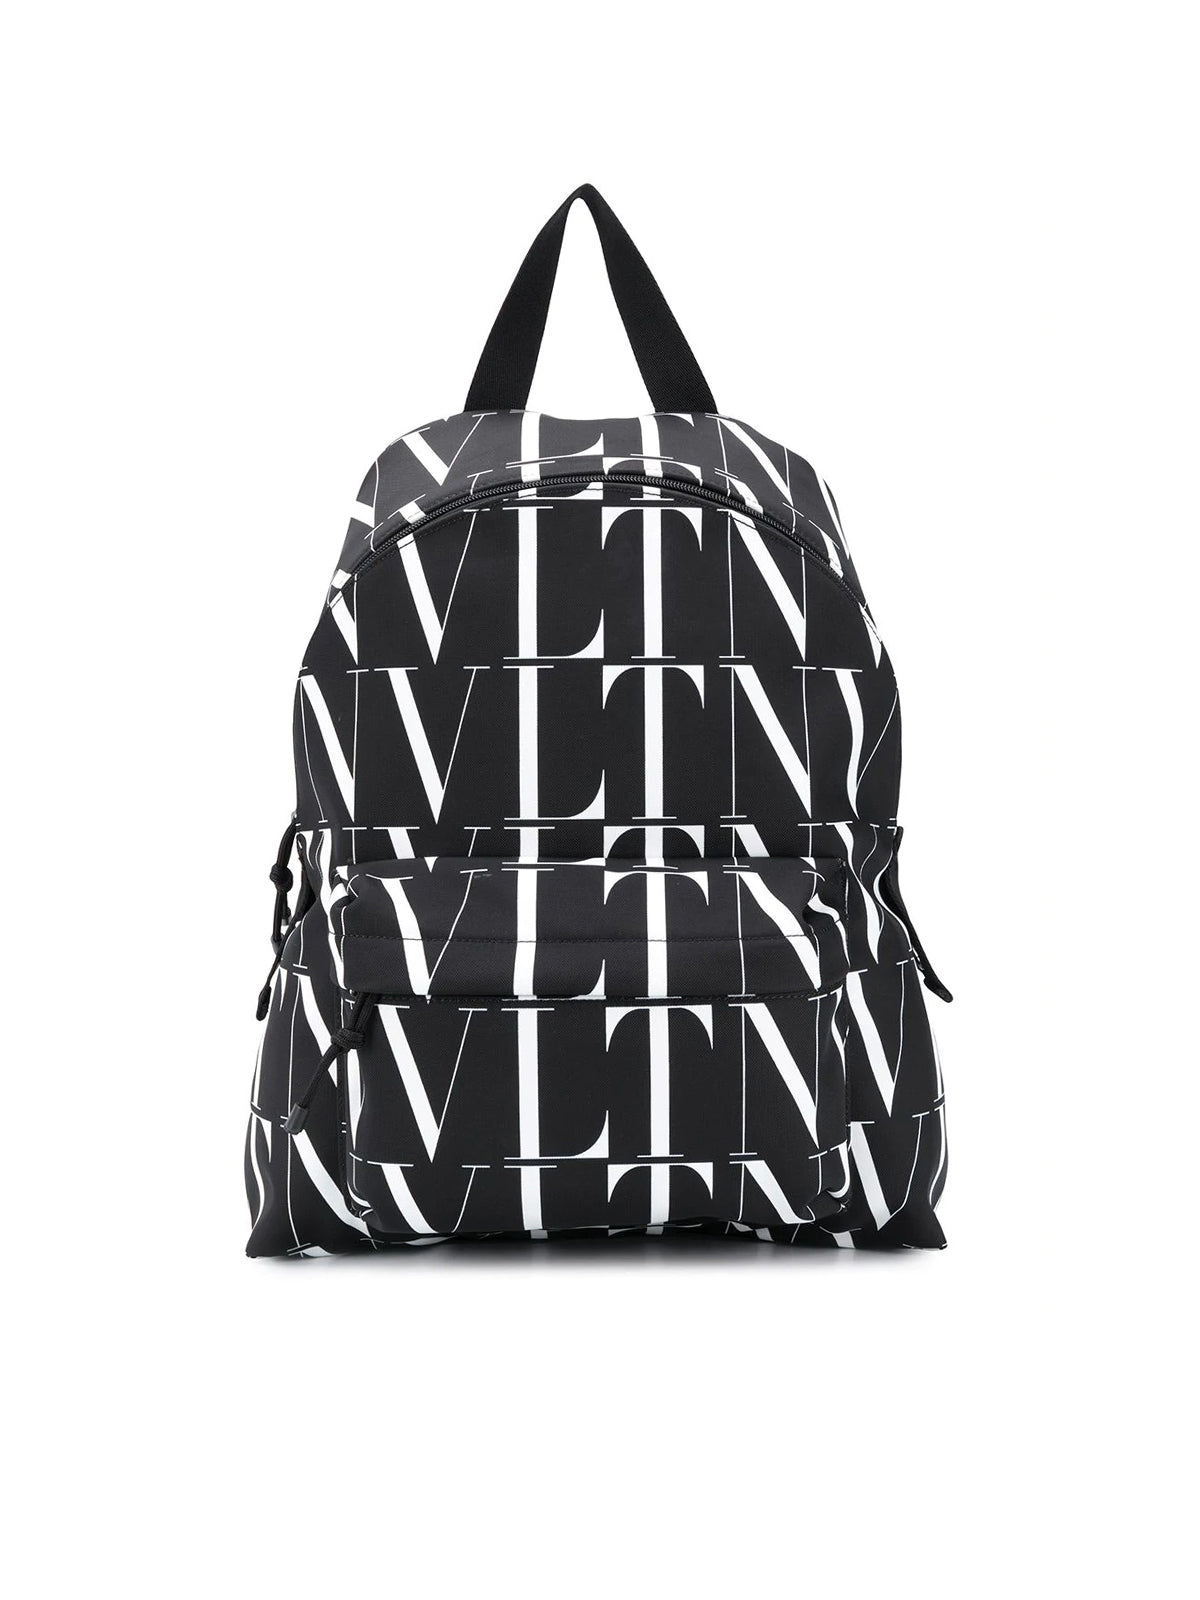 VLTN Times backpack